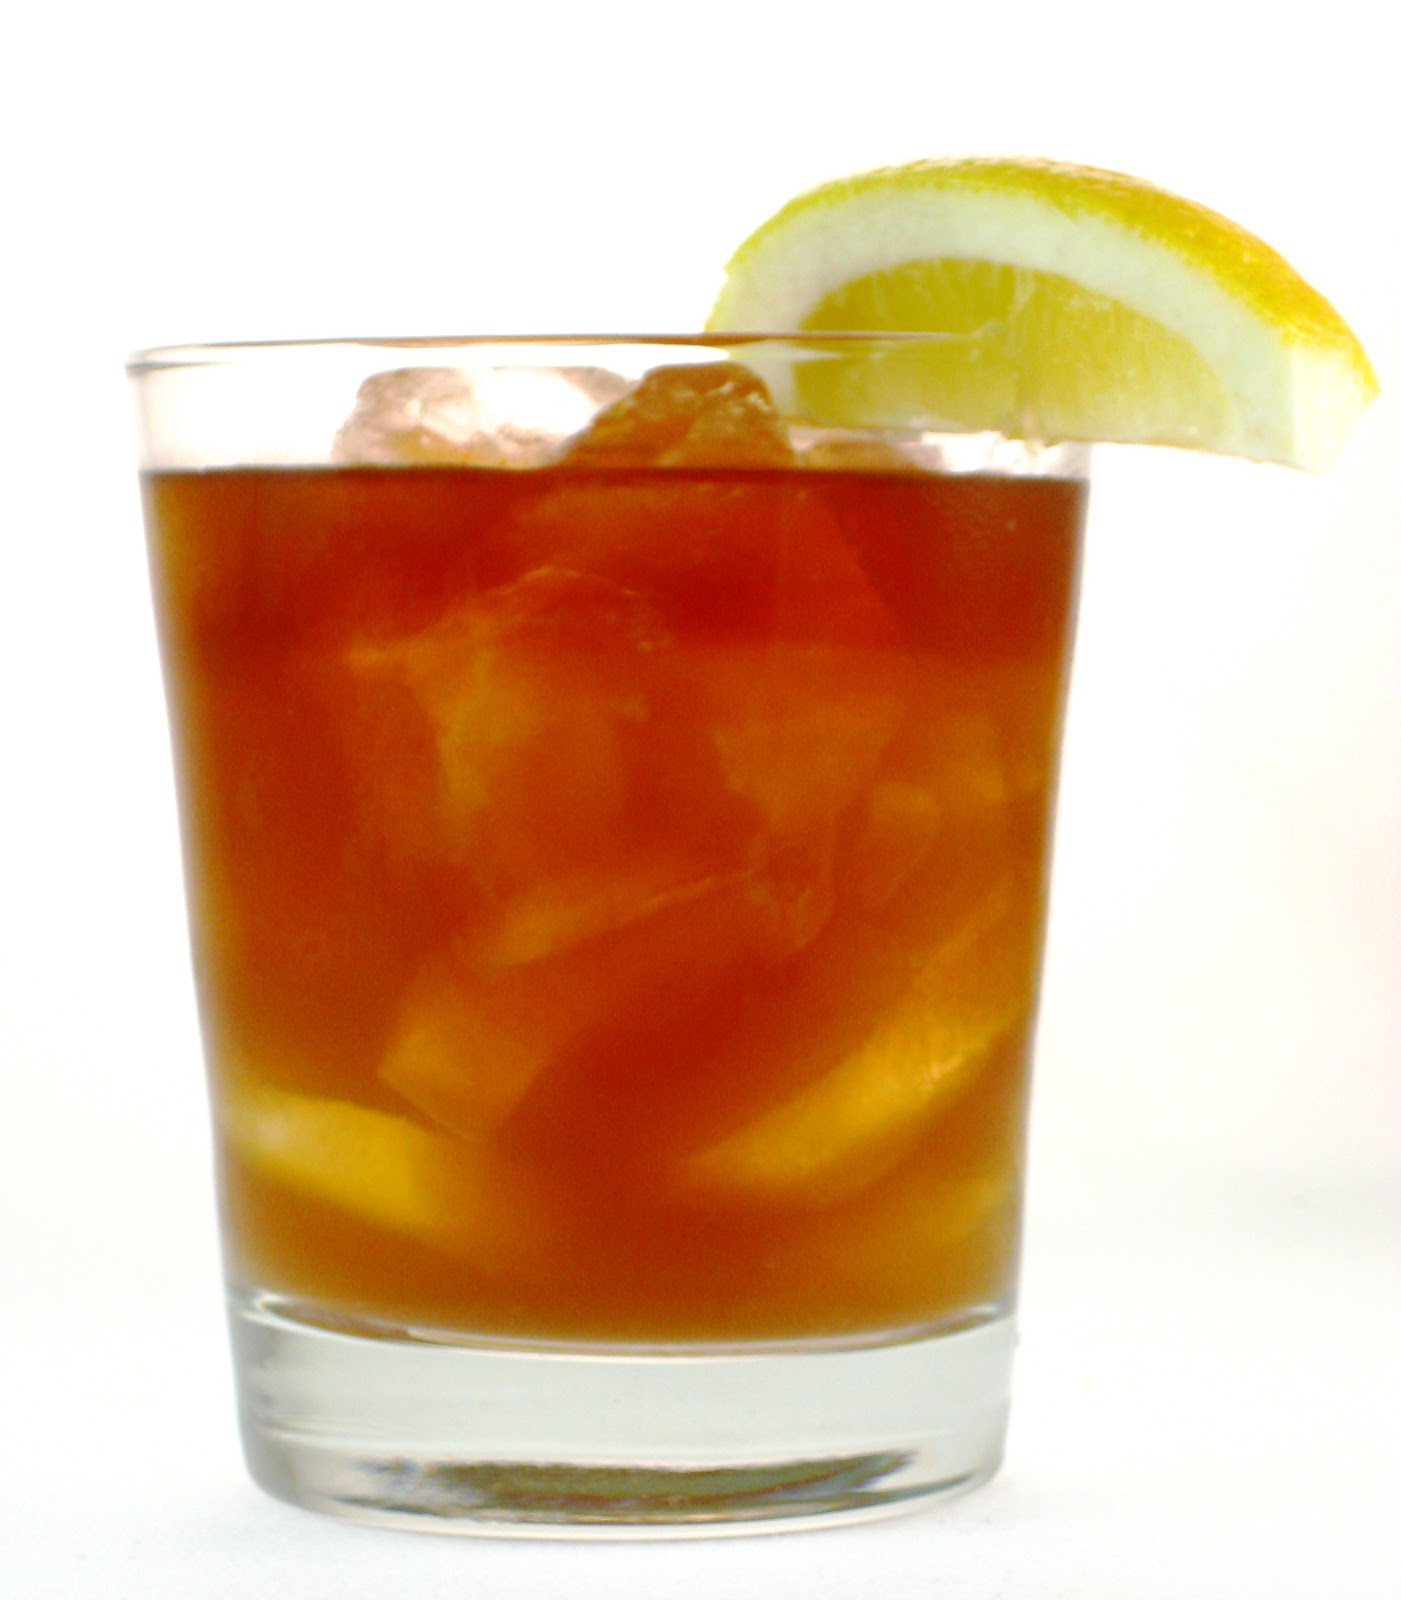 Mangiamo celebrate national rum day with captain morgan for Mixed drink with spiced rum